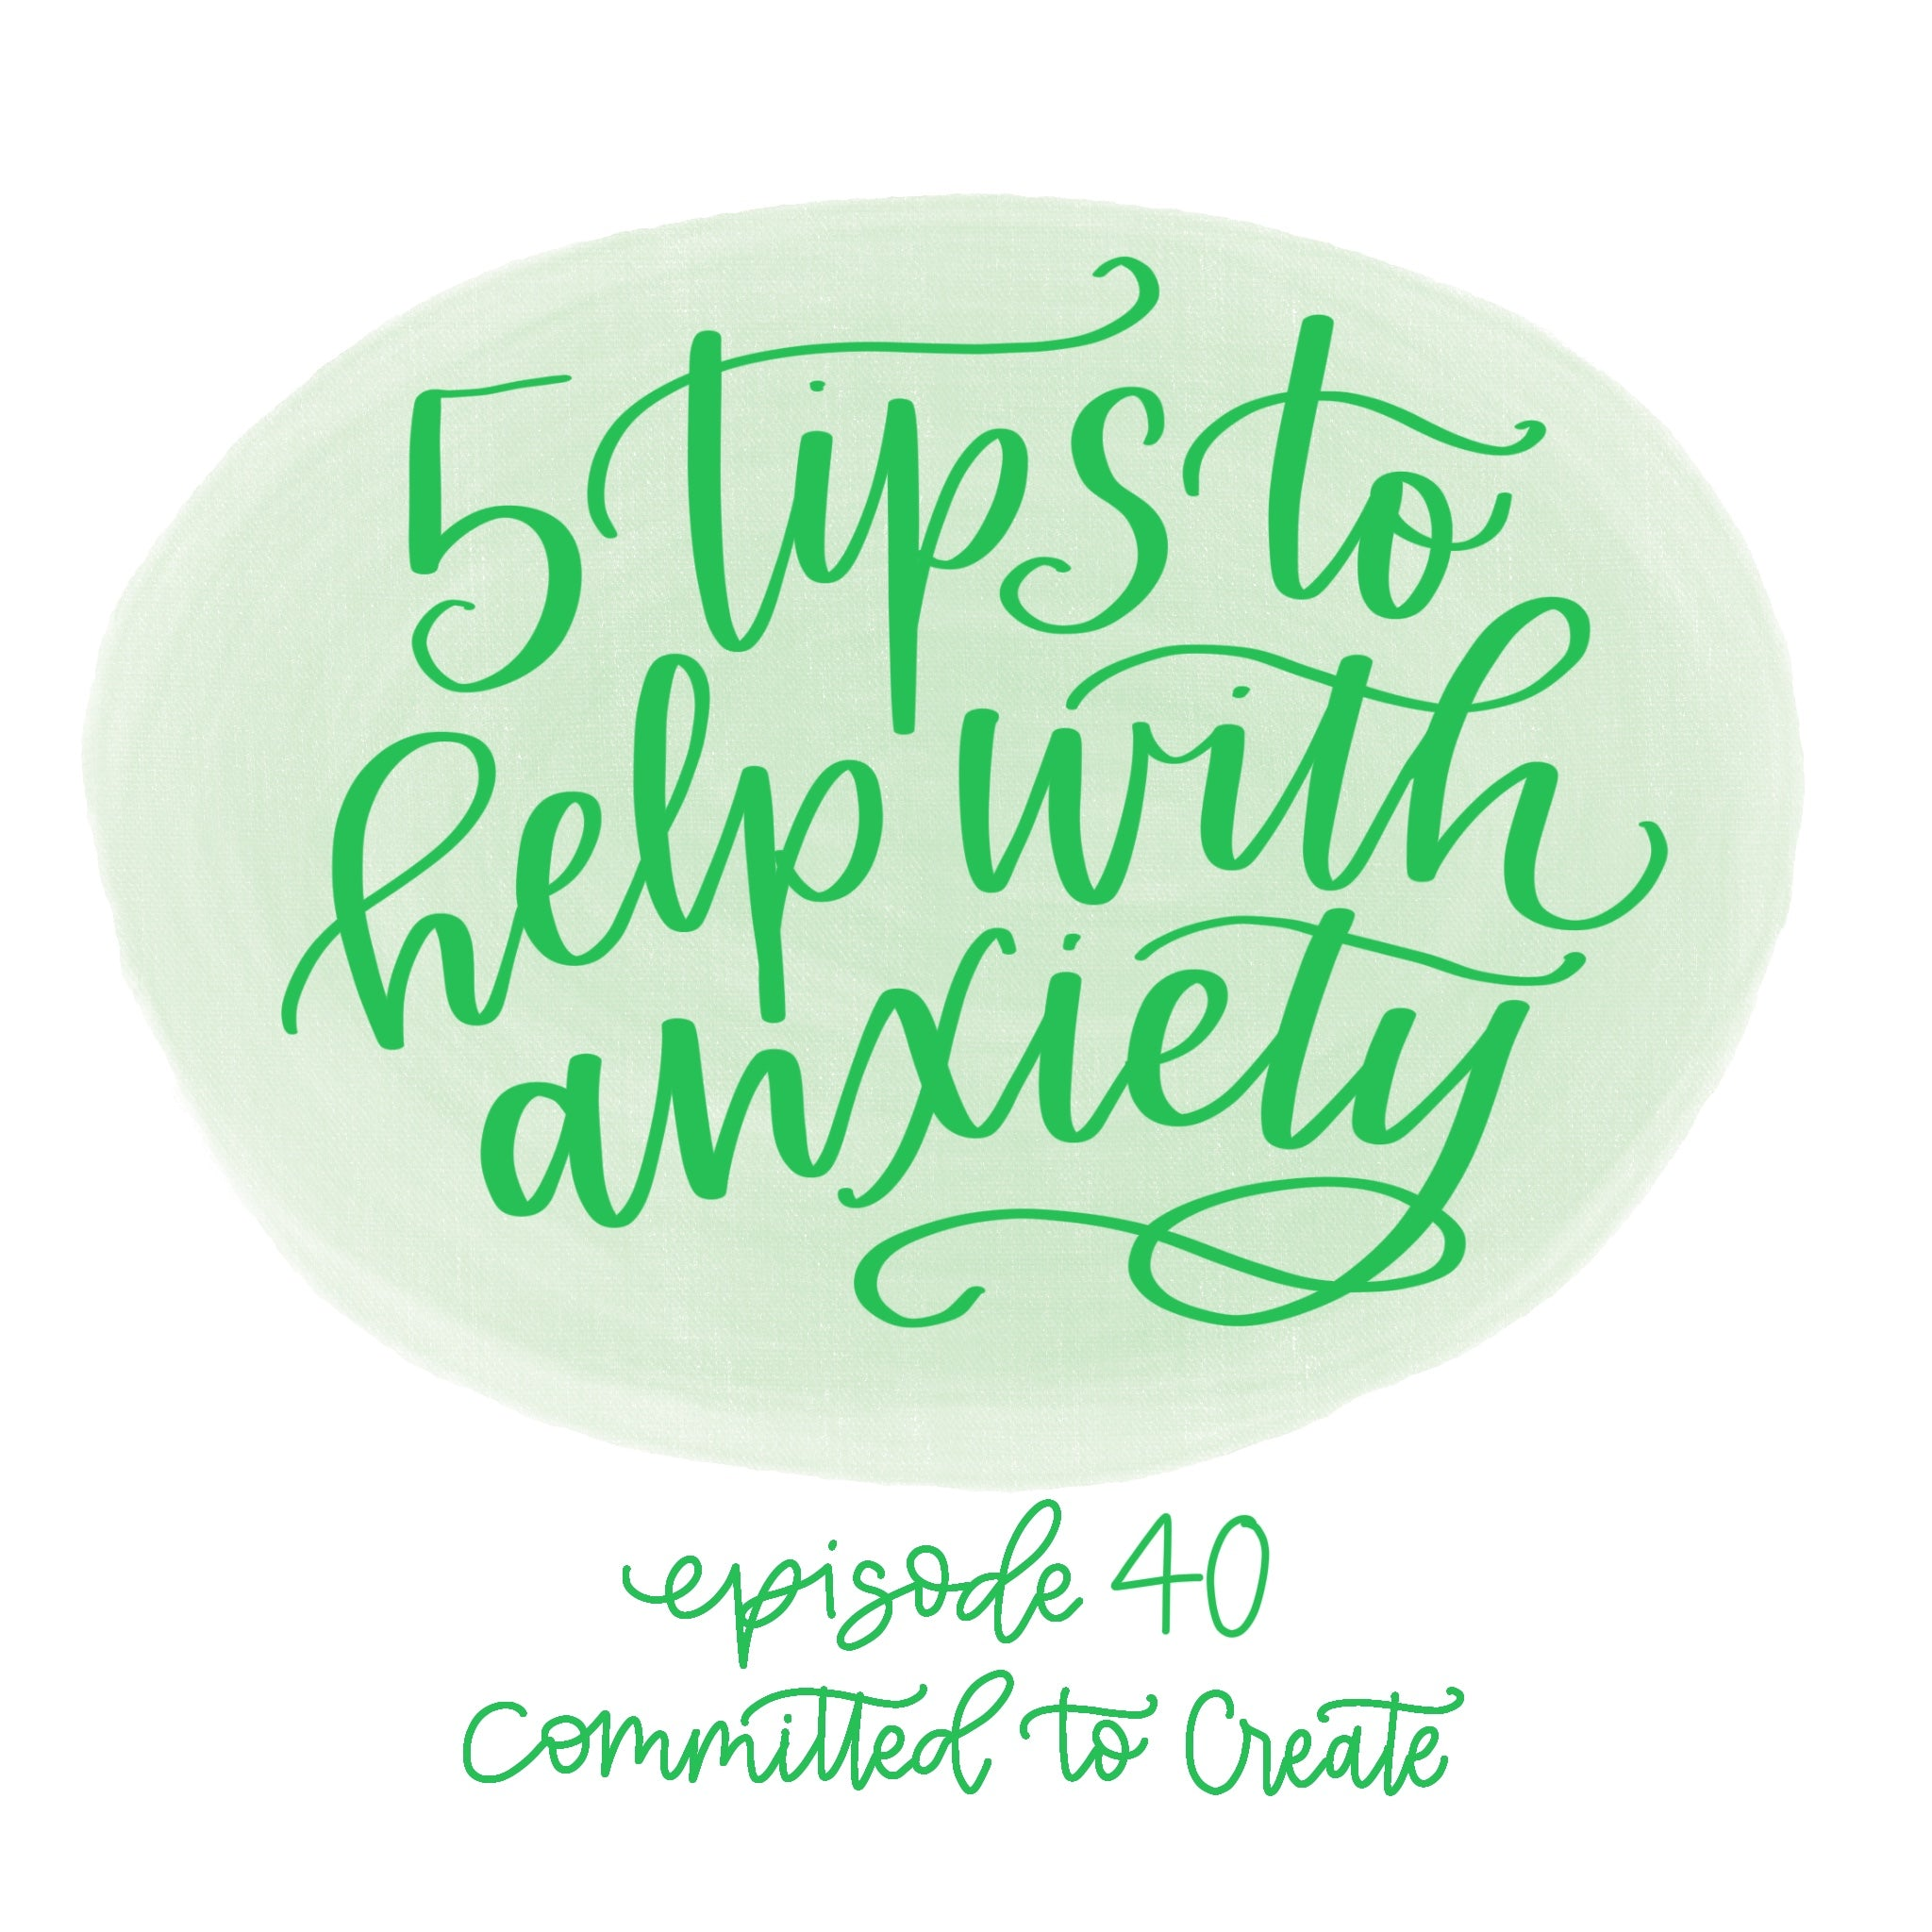 40: 5 Tips to Help with Anxiety